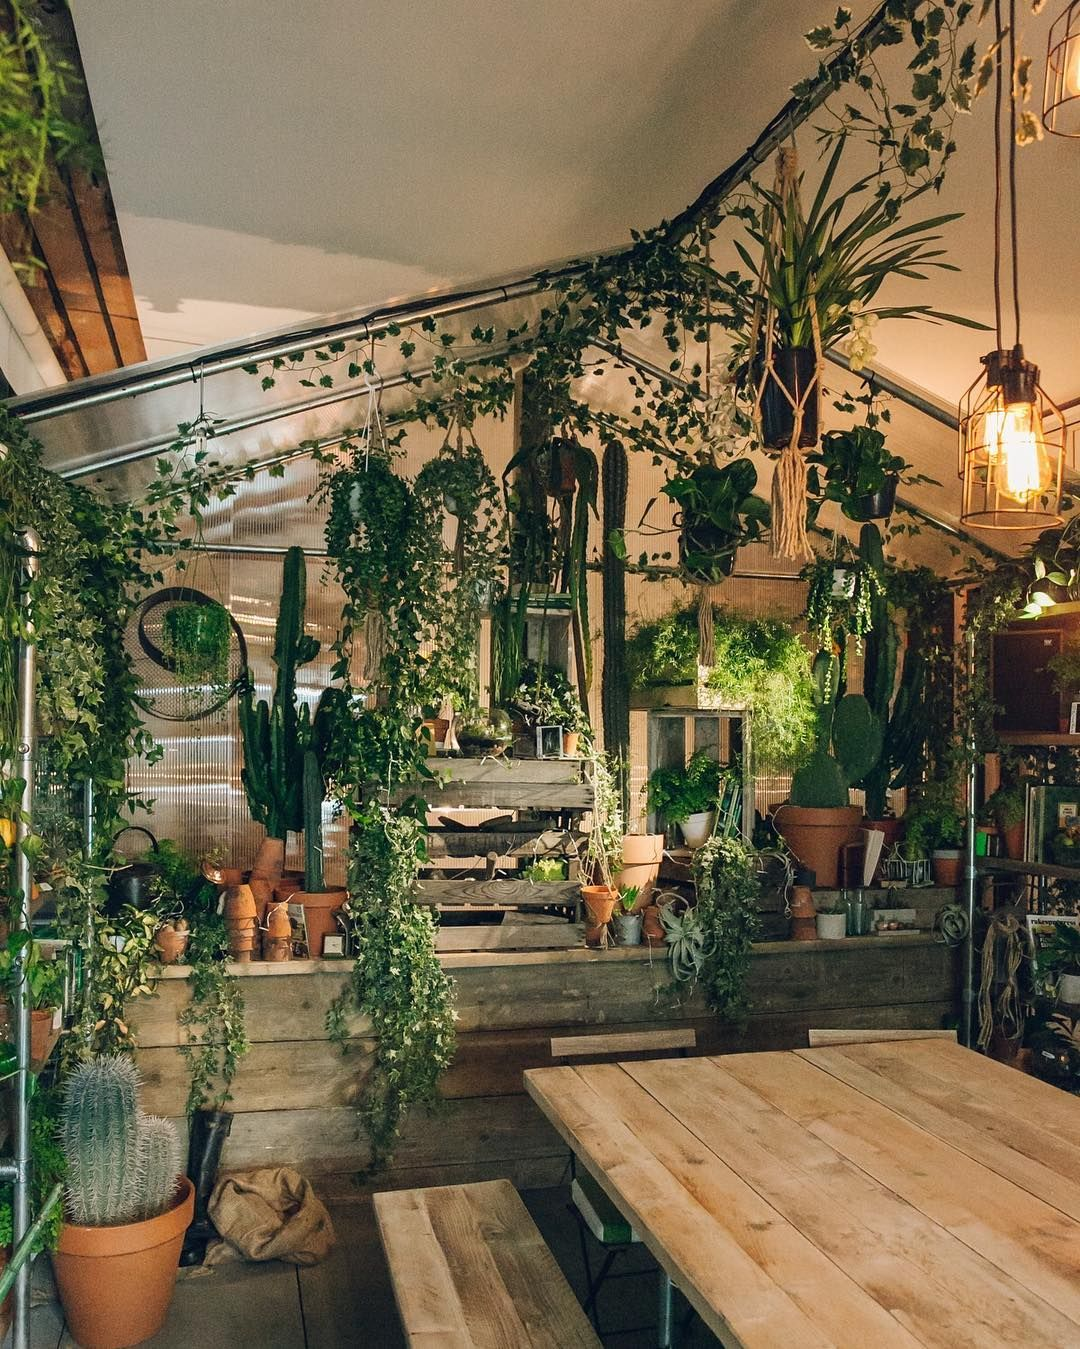 The Actual Indoor Green House From The @airbnb X @pantone